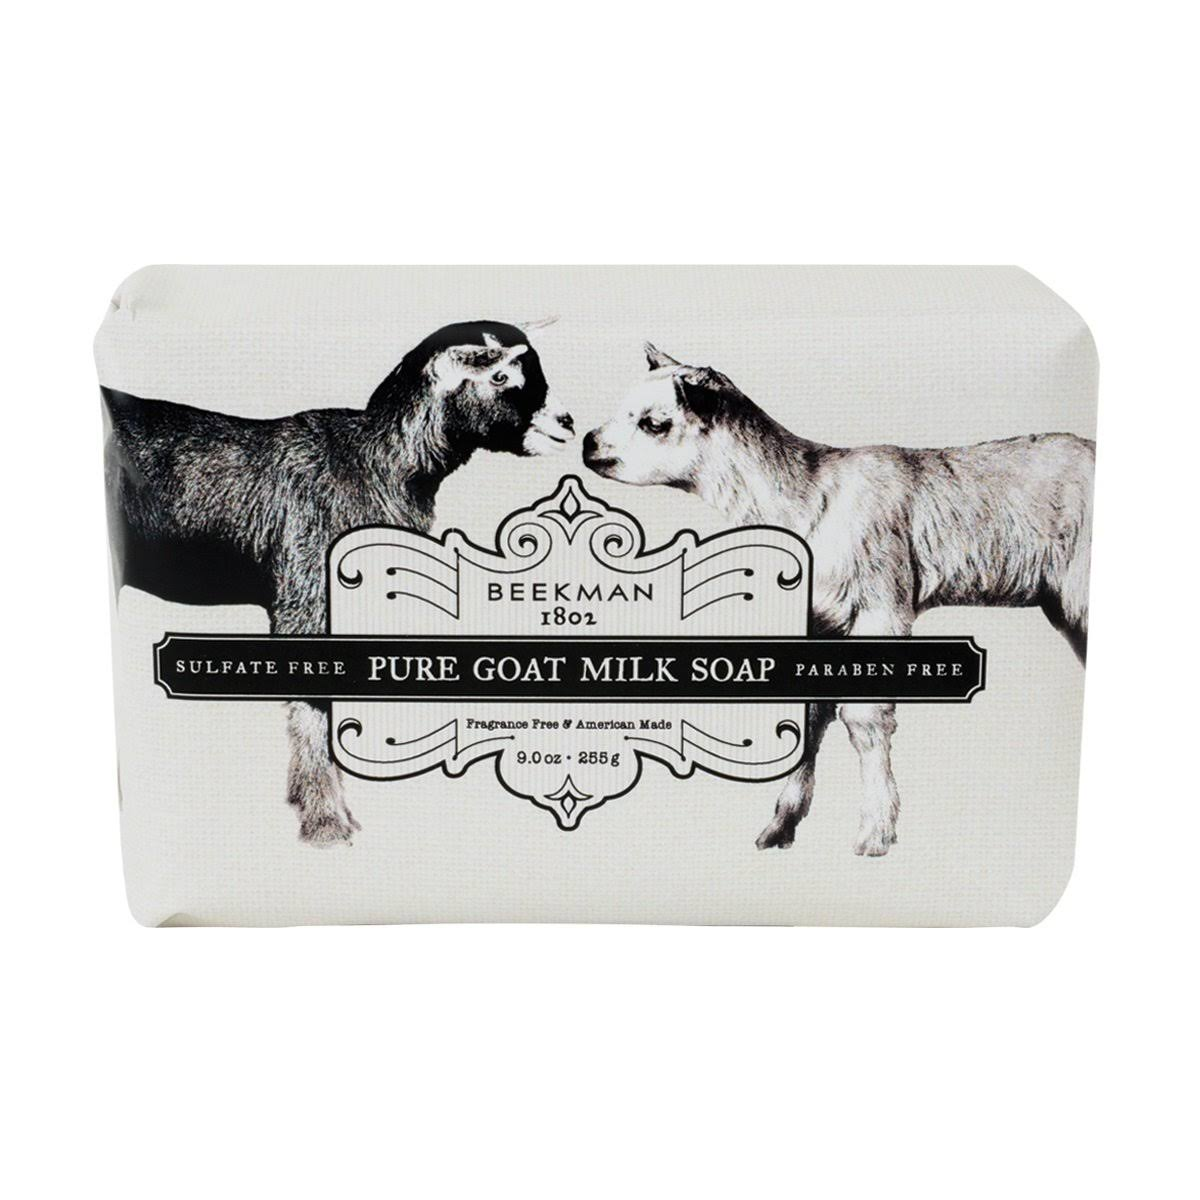 Beekman 1802 Pure Goat Milk Soap - Fragrance Free, 9.0oz Bar